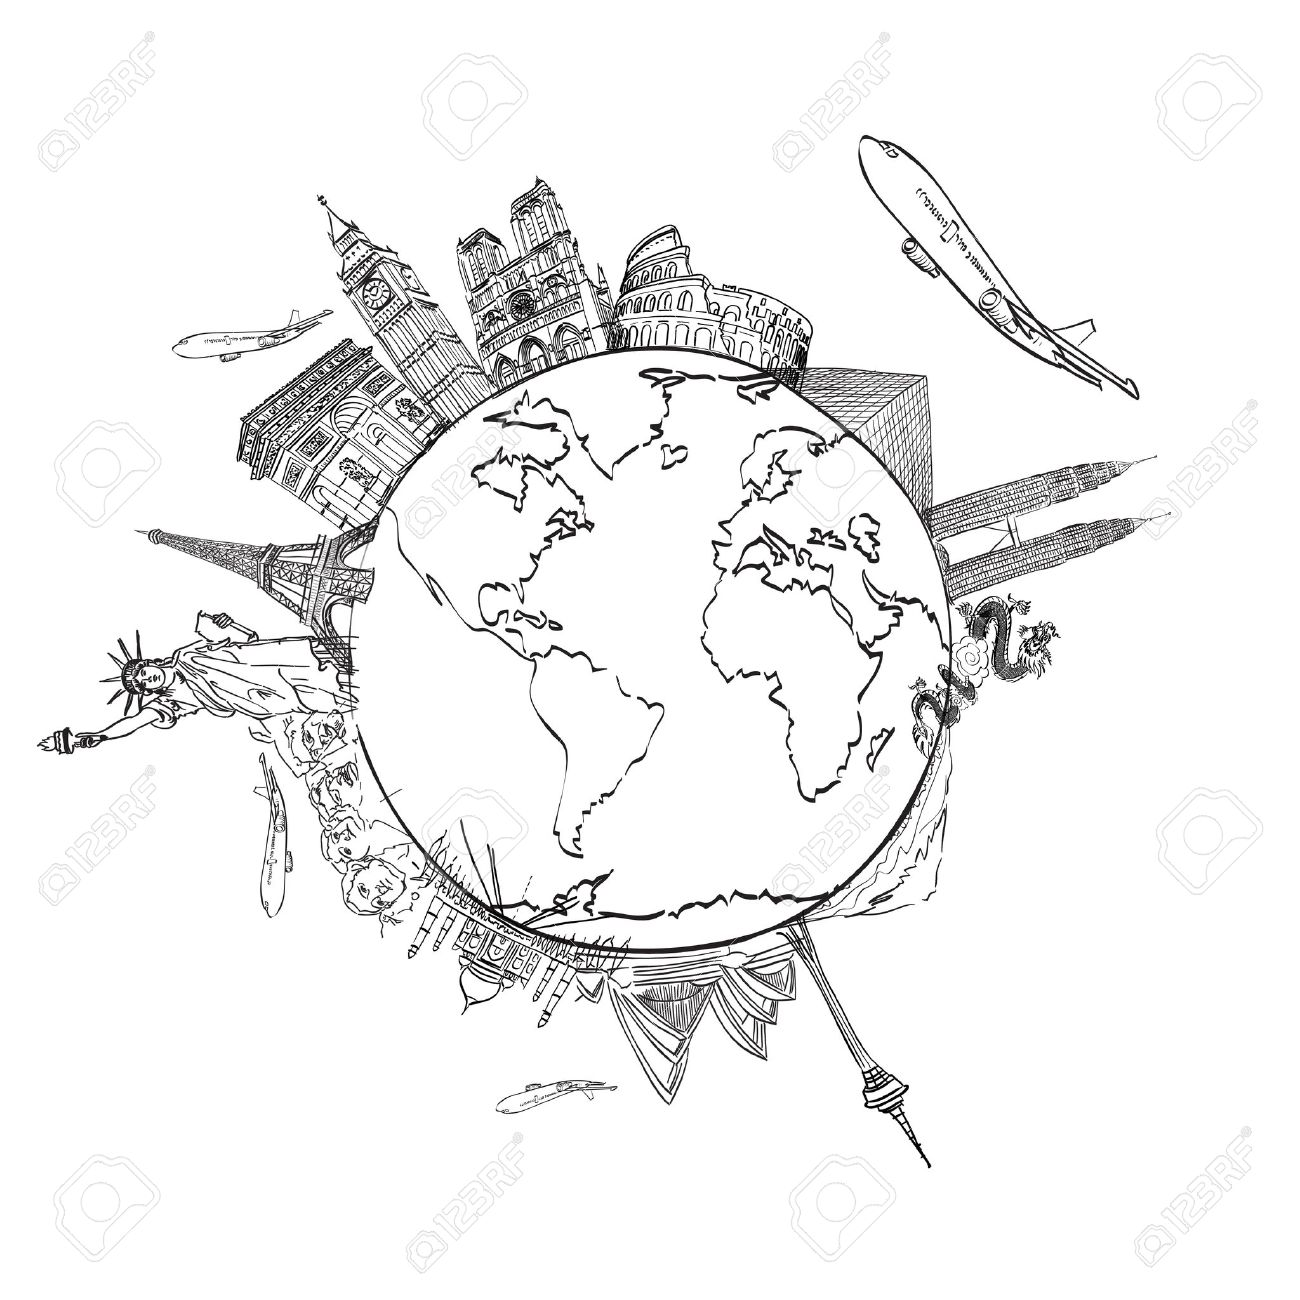 drawing the dream travel around the world in a whiteboard Stock Photo - 12989986